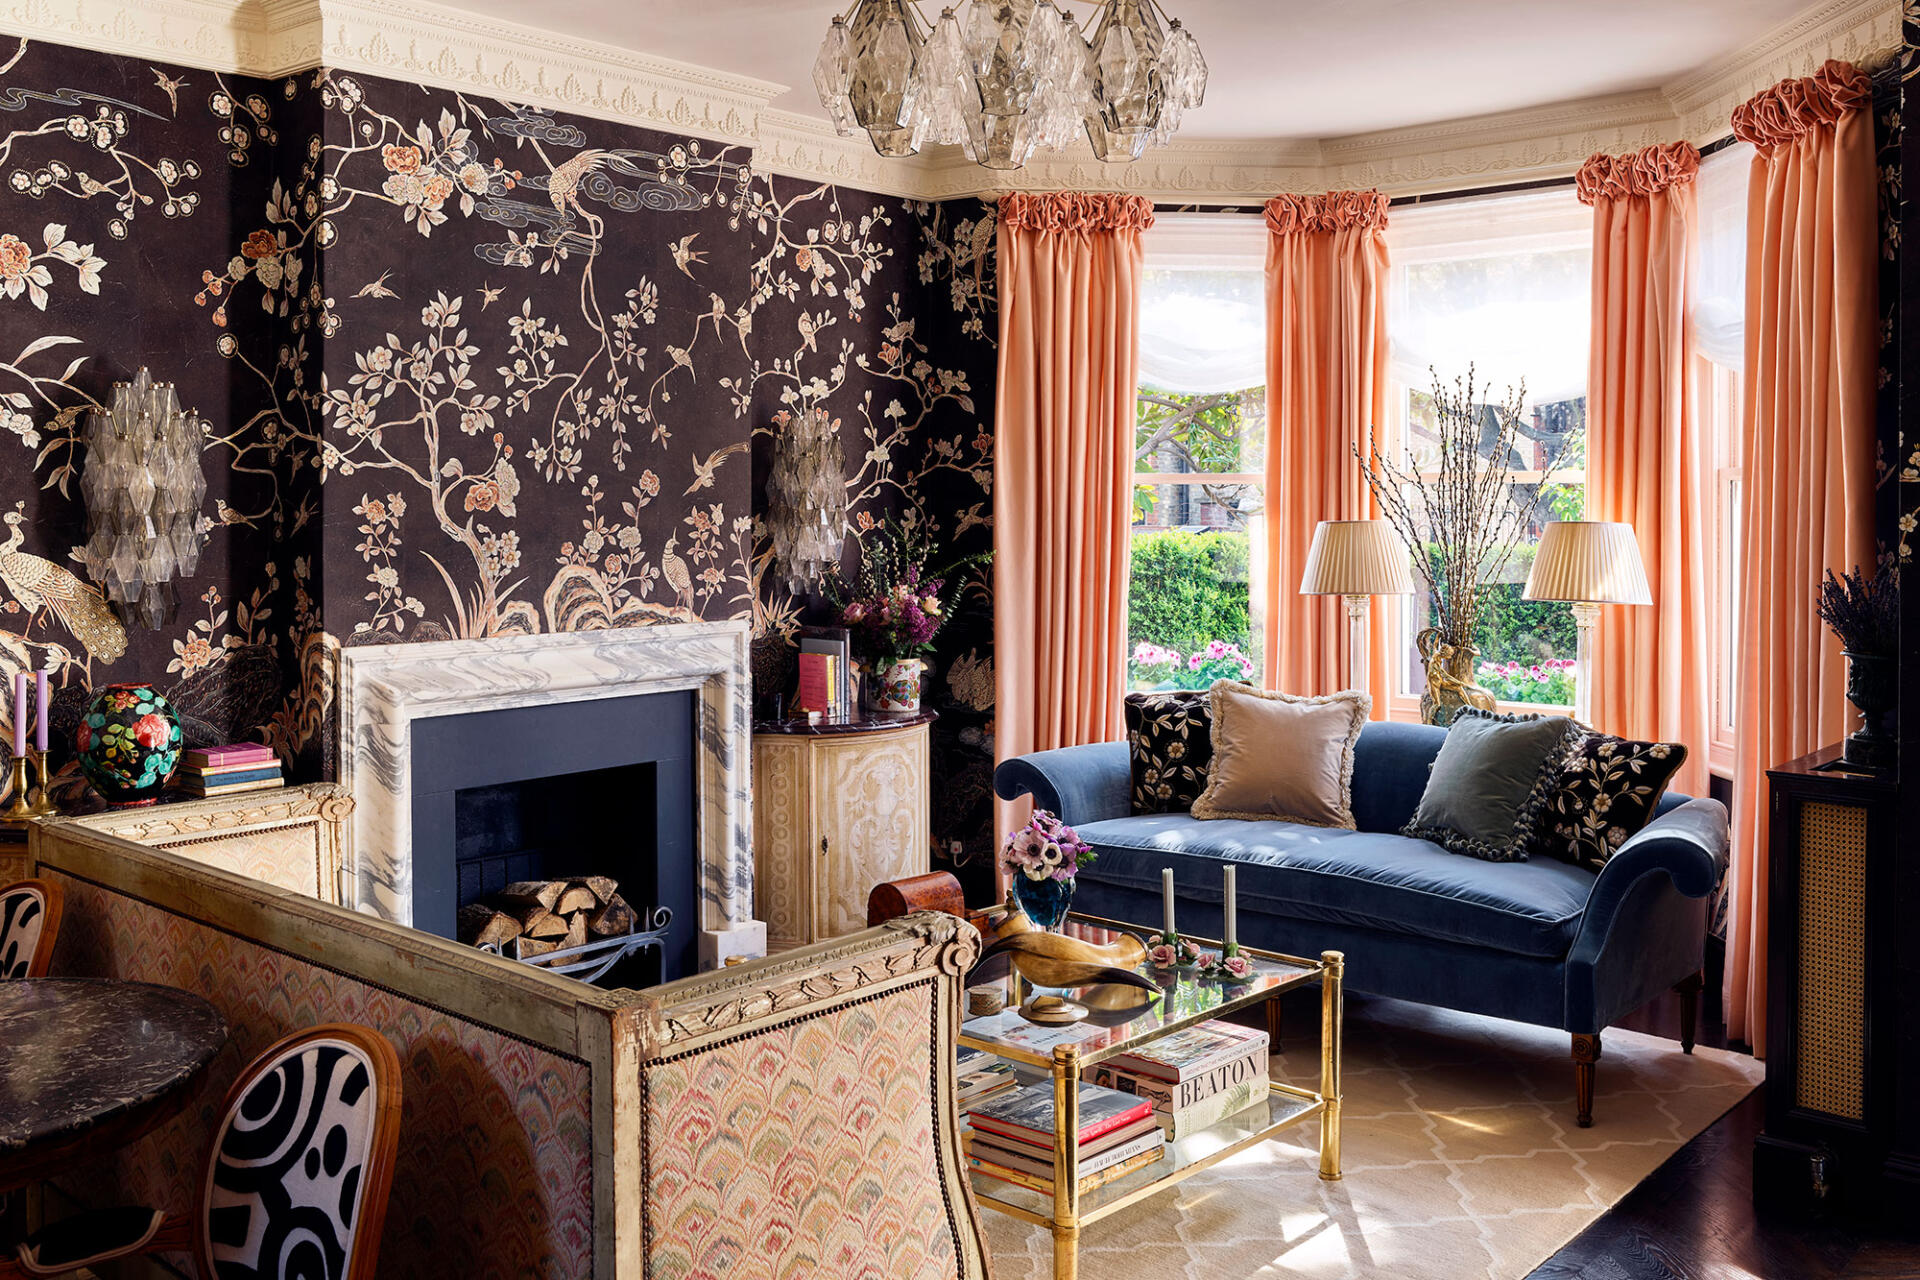 Coco Coromandel wallpaper by de Gournay